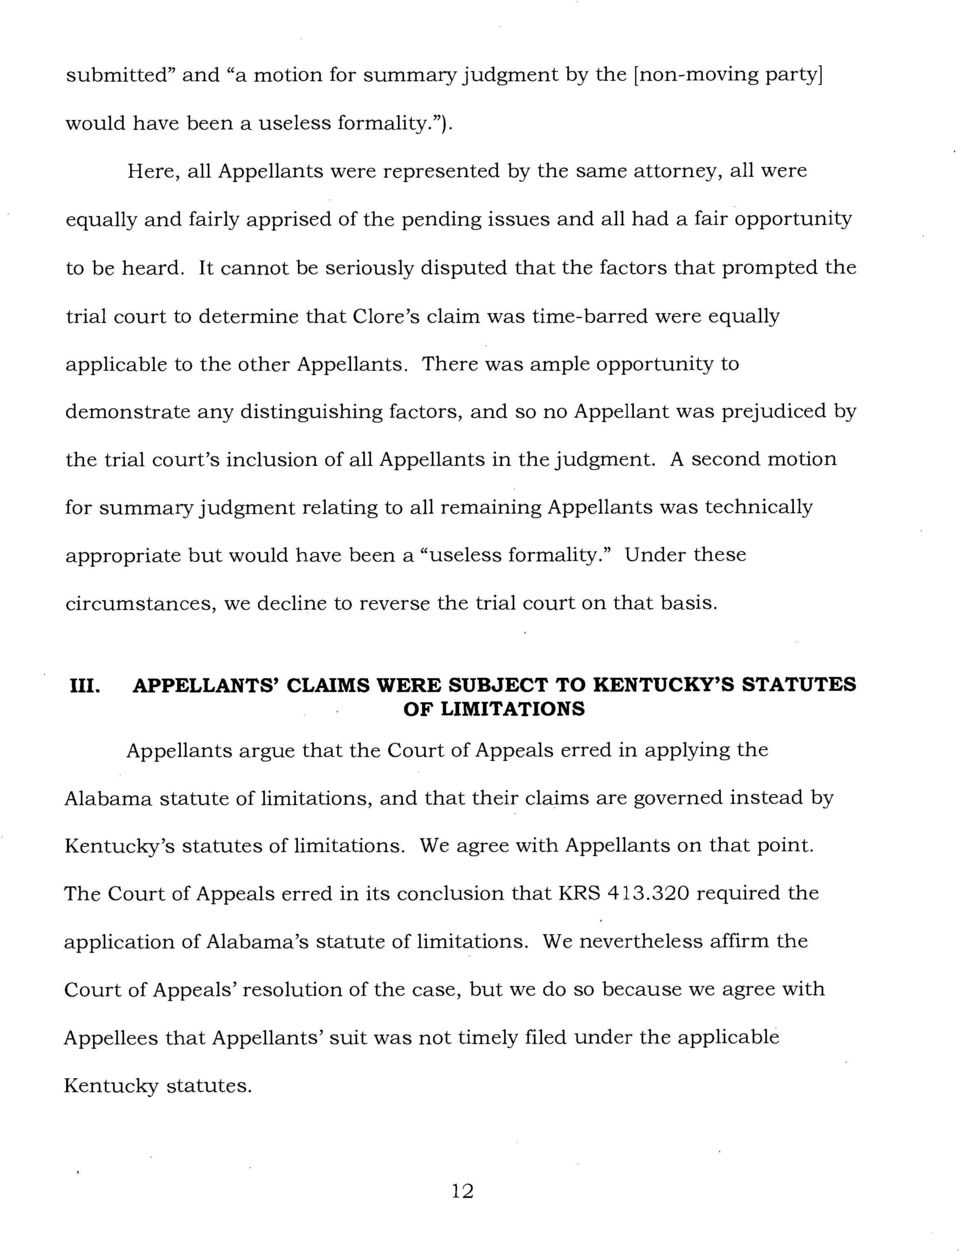 It cannot be seriously disputed that the factors that prompted the trial court to determine that Clore's claim was time-barred were equally applicable to the other Appellants.